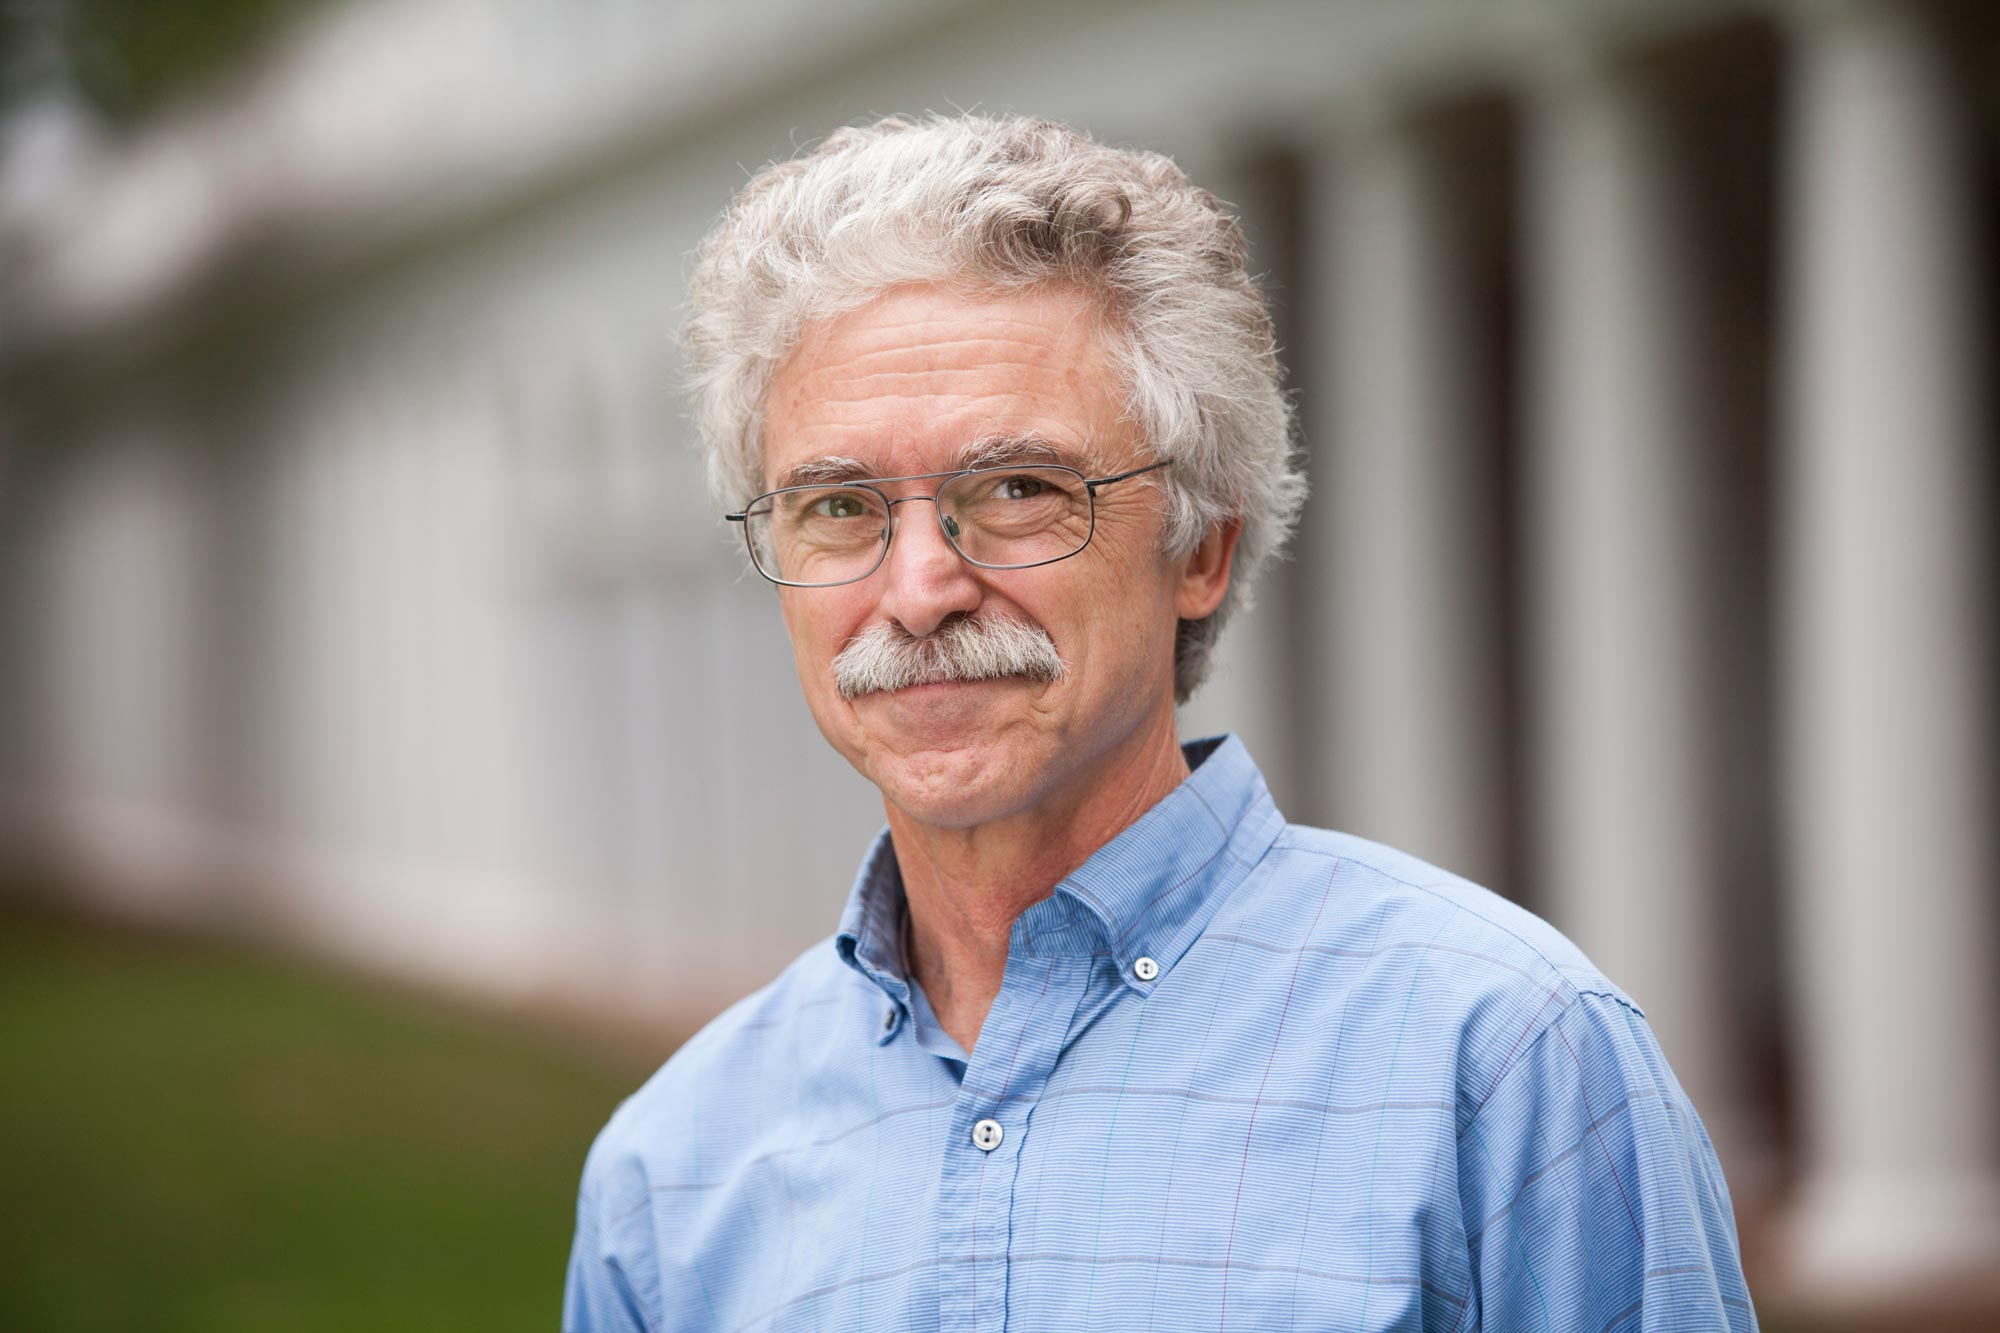 William Shobe is a professor of public policy and economics, and the director of UVA's Center for Economic and Policy Studies.